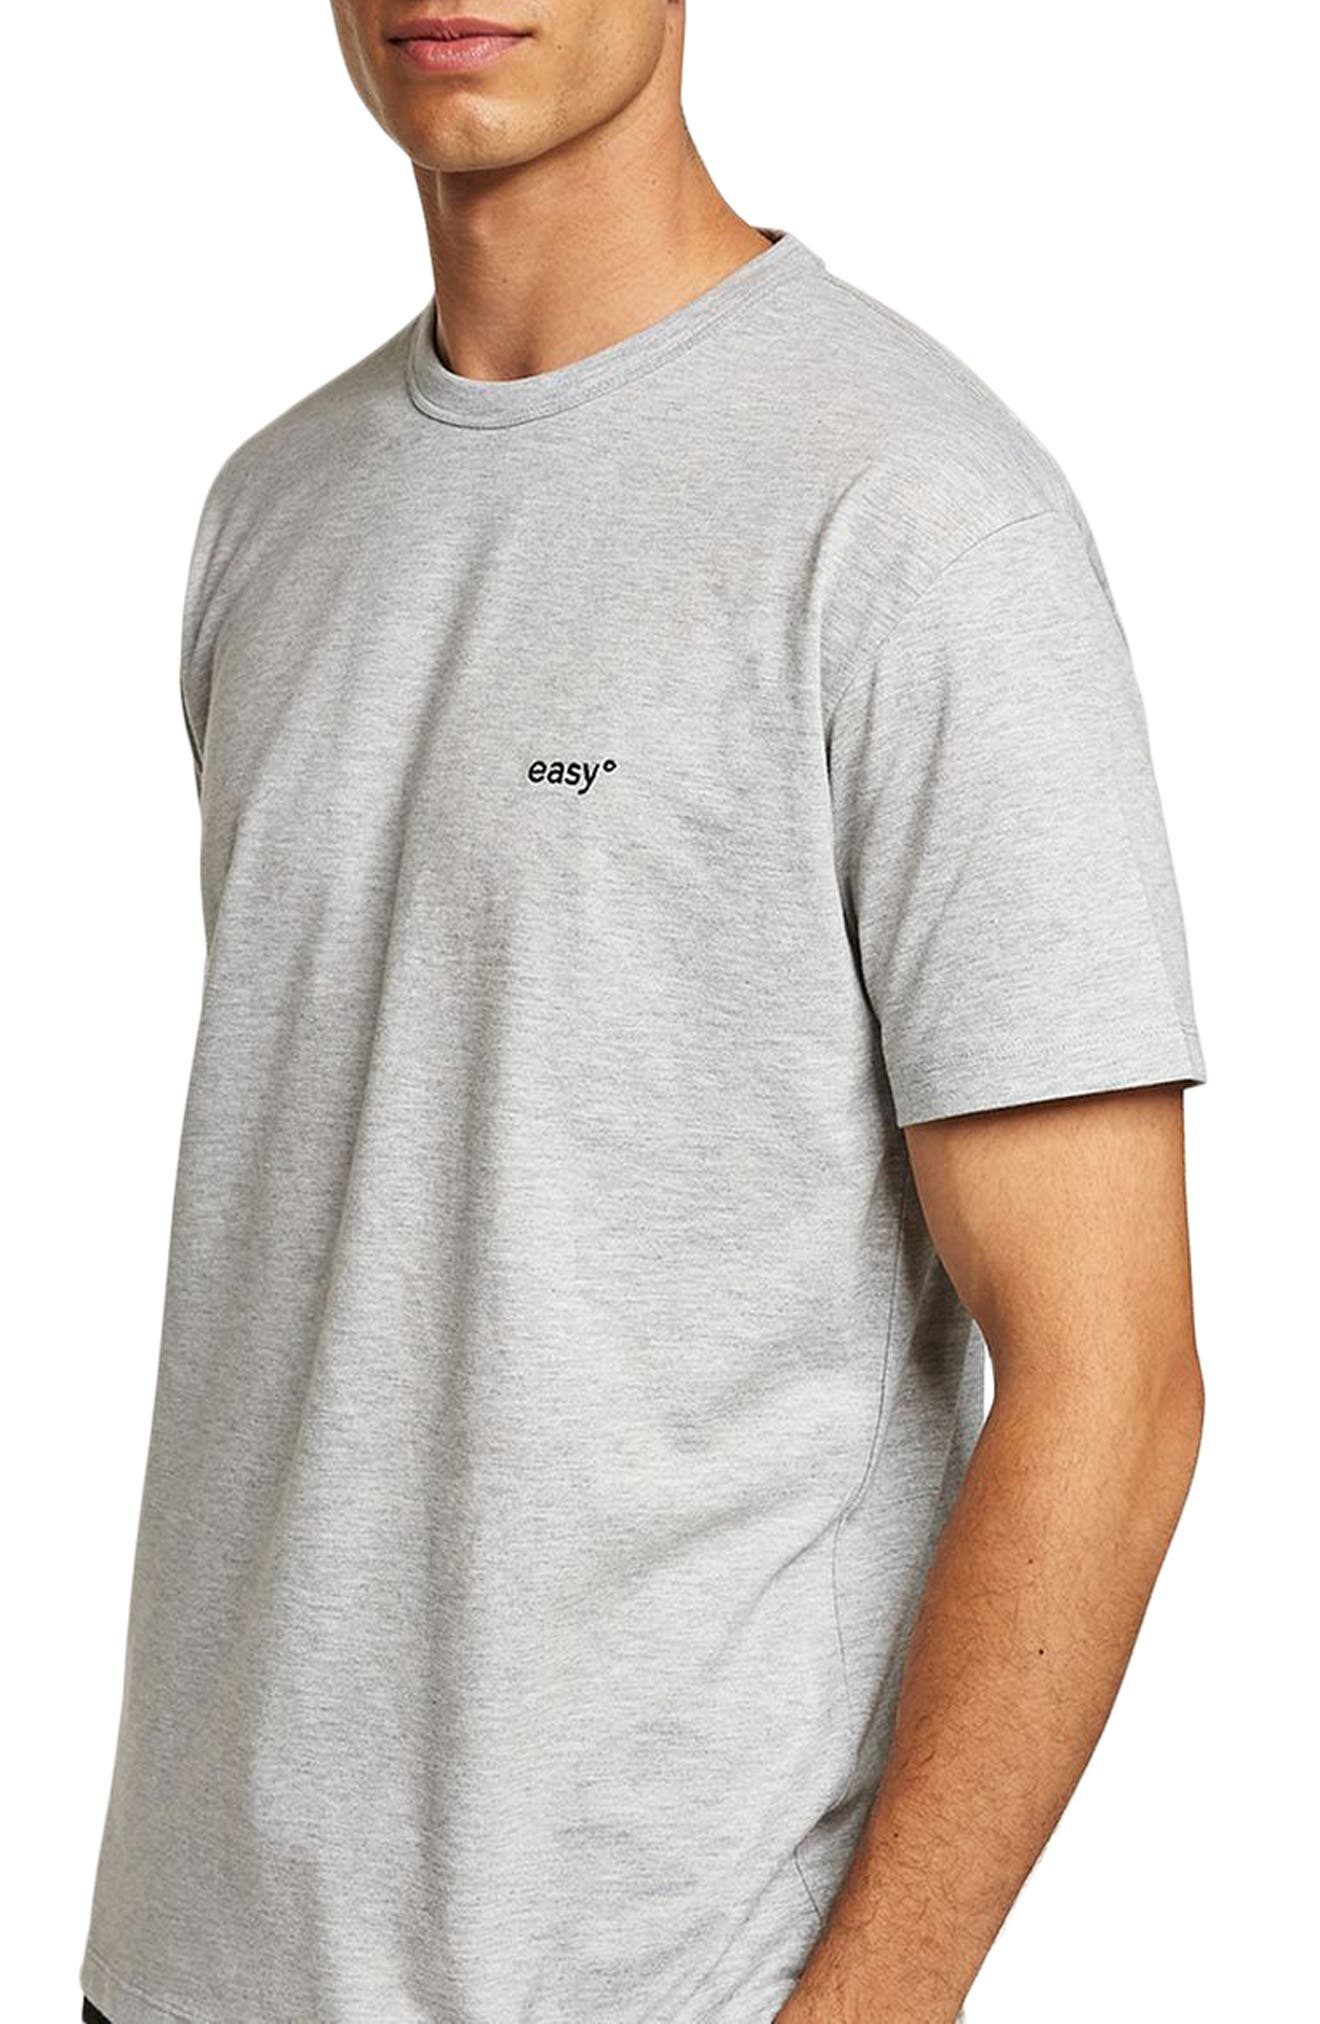 Oversize Embroidered Easy T-Shirt,                             Main thumbnail 1, color,                             020